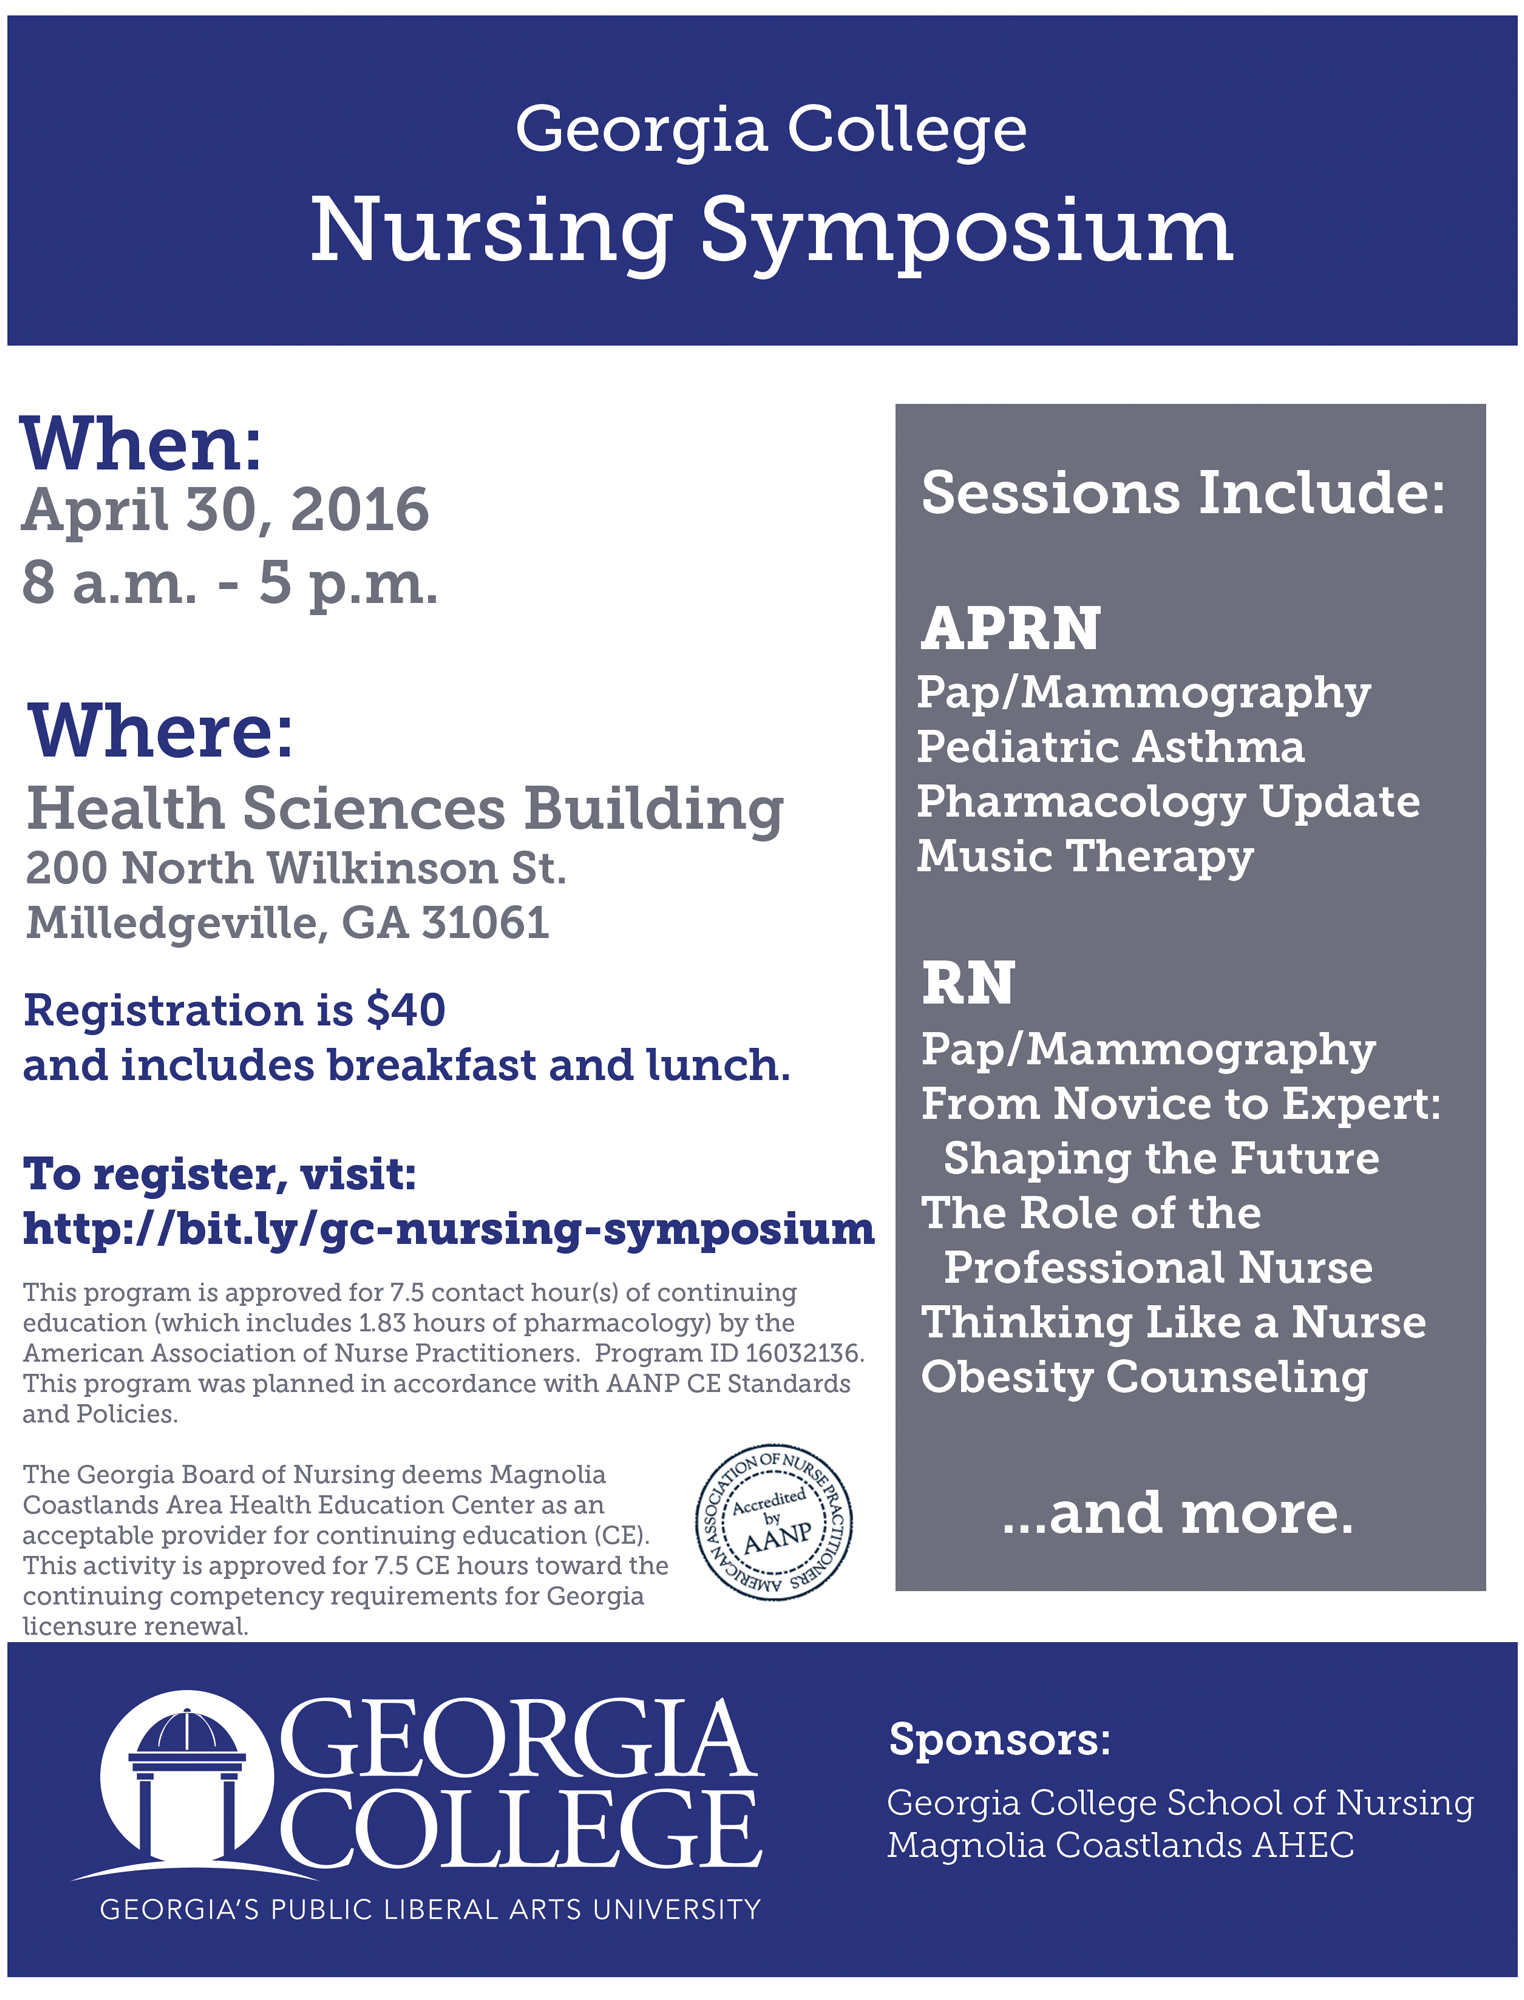 Georgia College Nursing Symposium